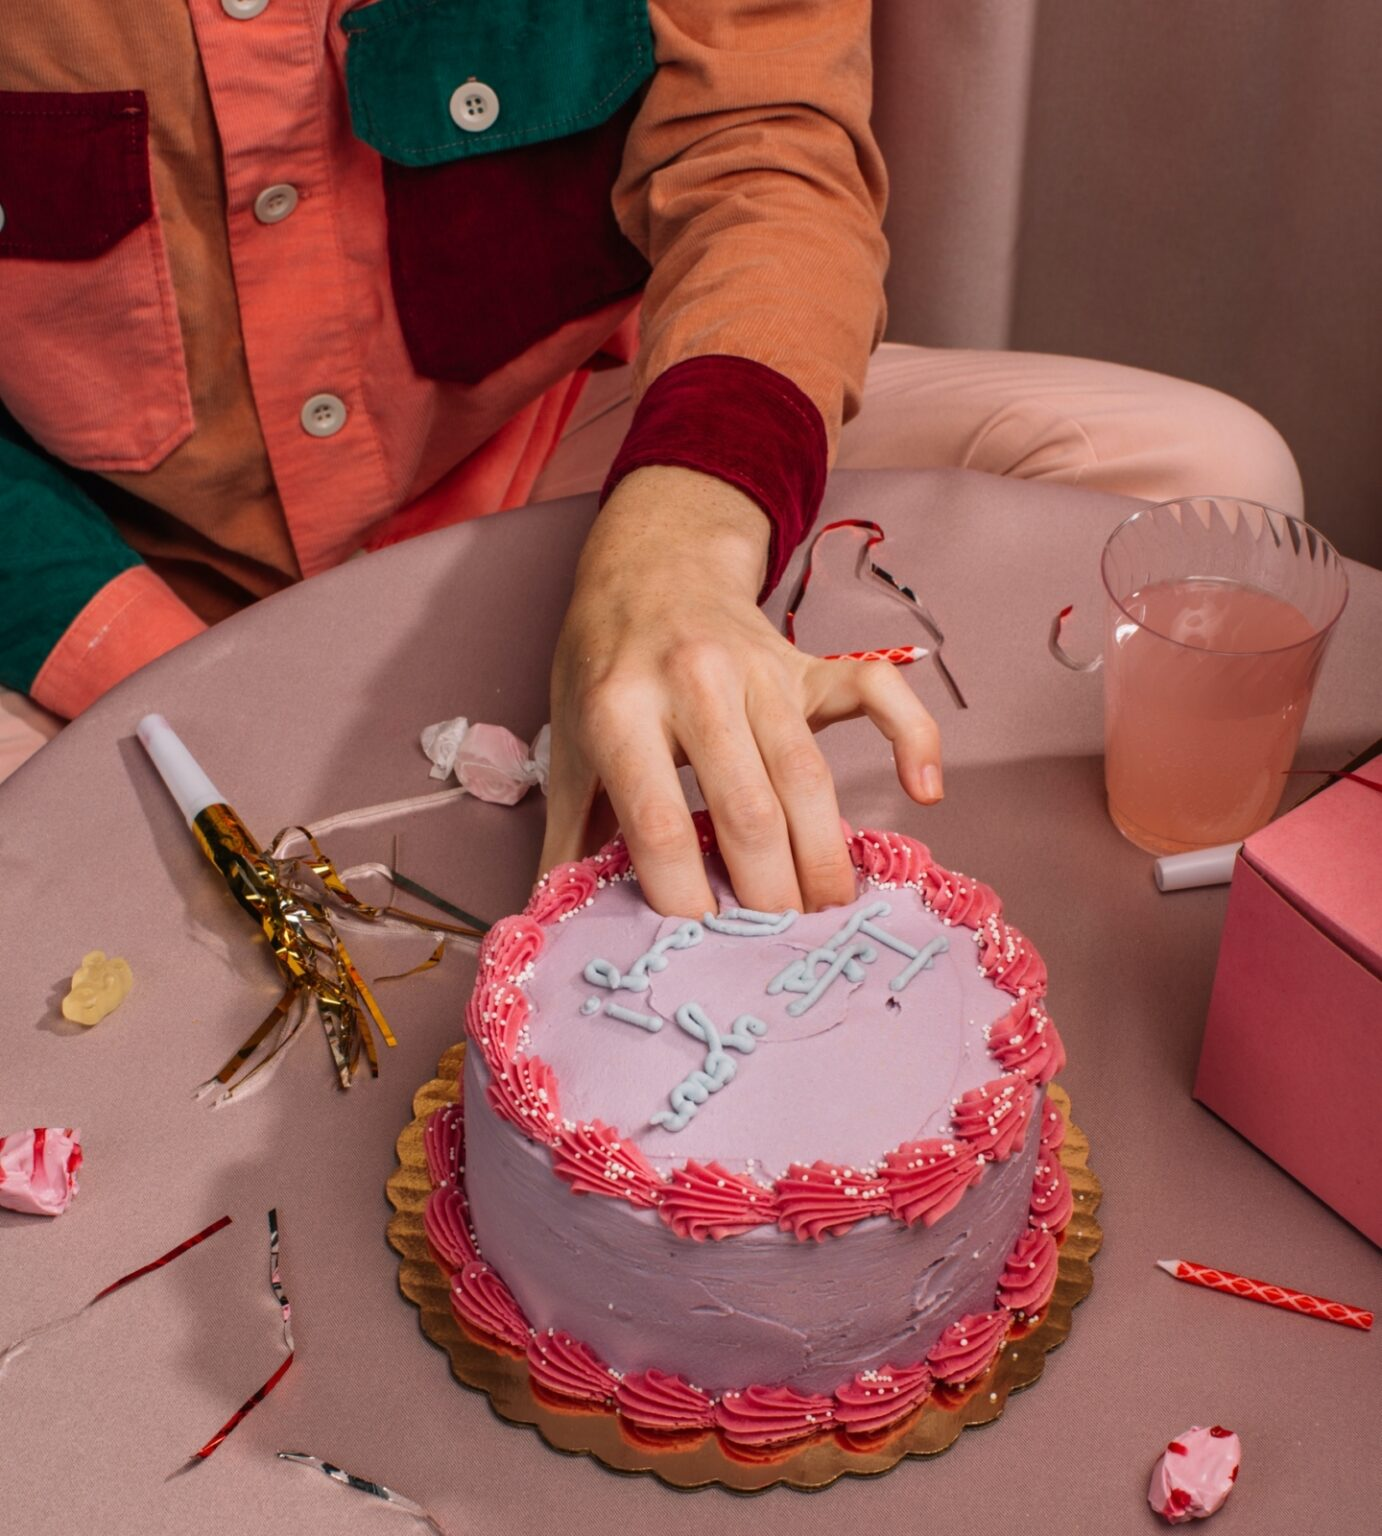 Fingers in pink birthday cake food porn